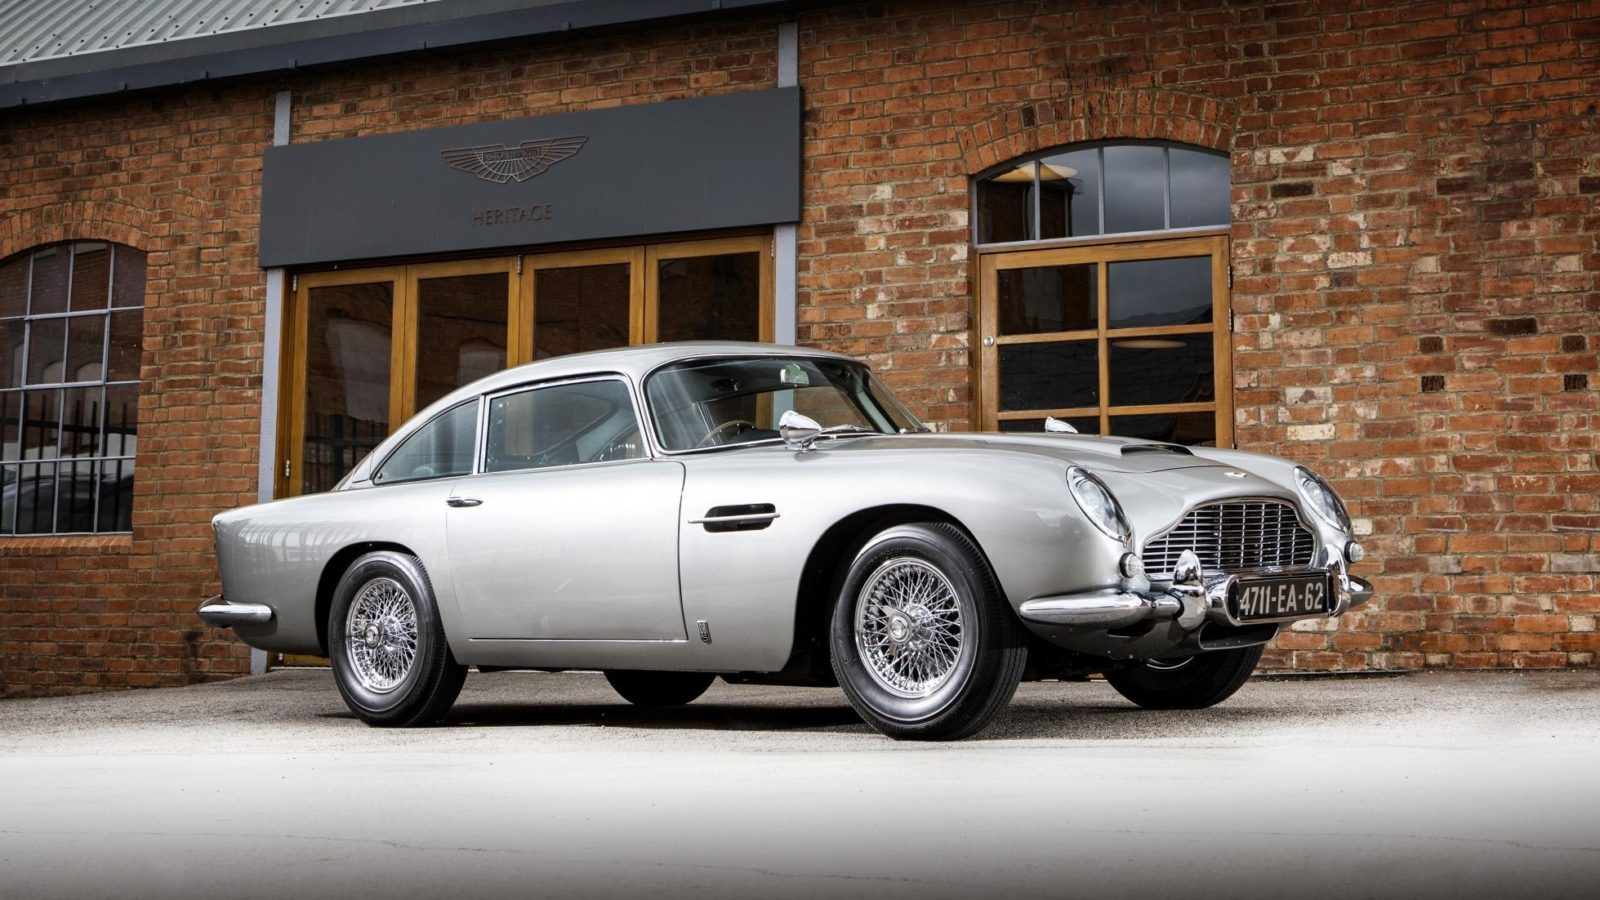 The iconic Aston Martin DB5 from James Bond's Goldfinger returns for a limited run